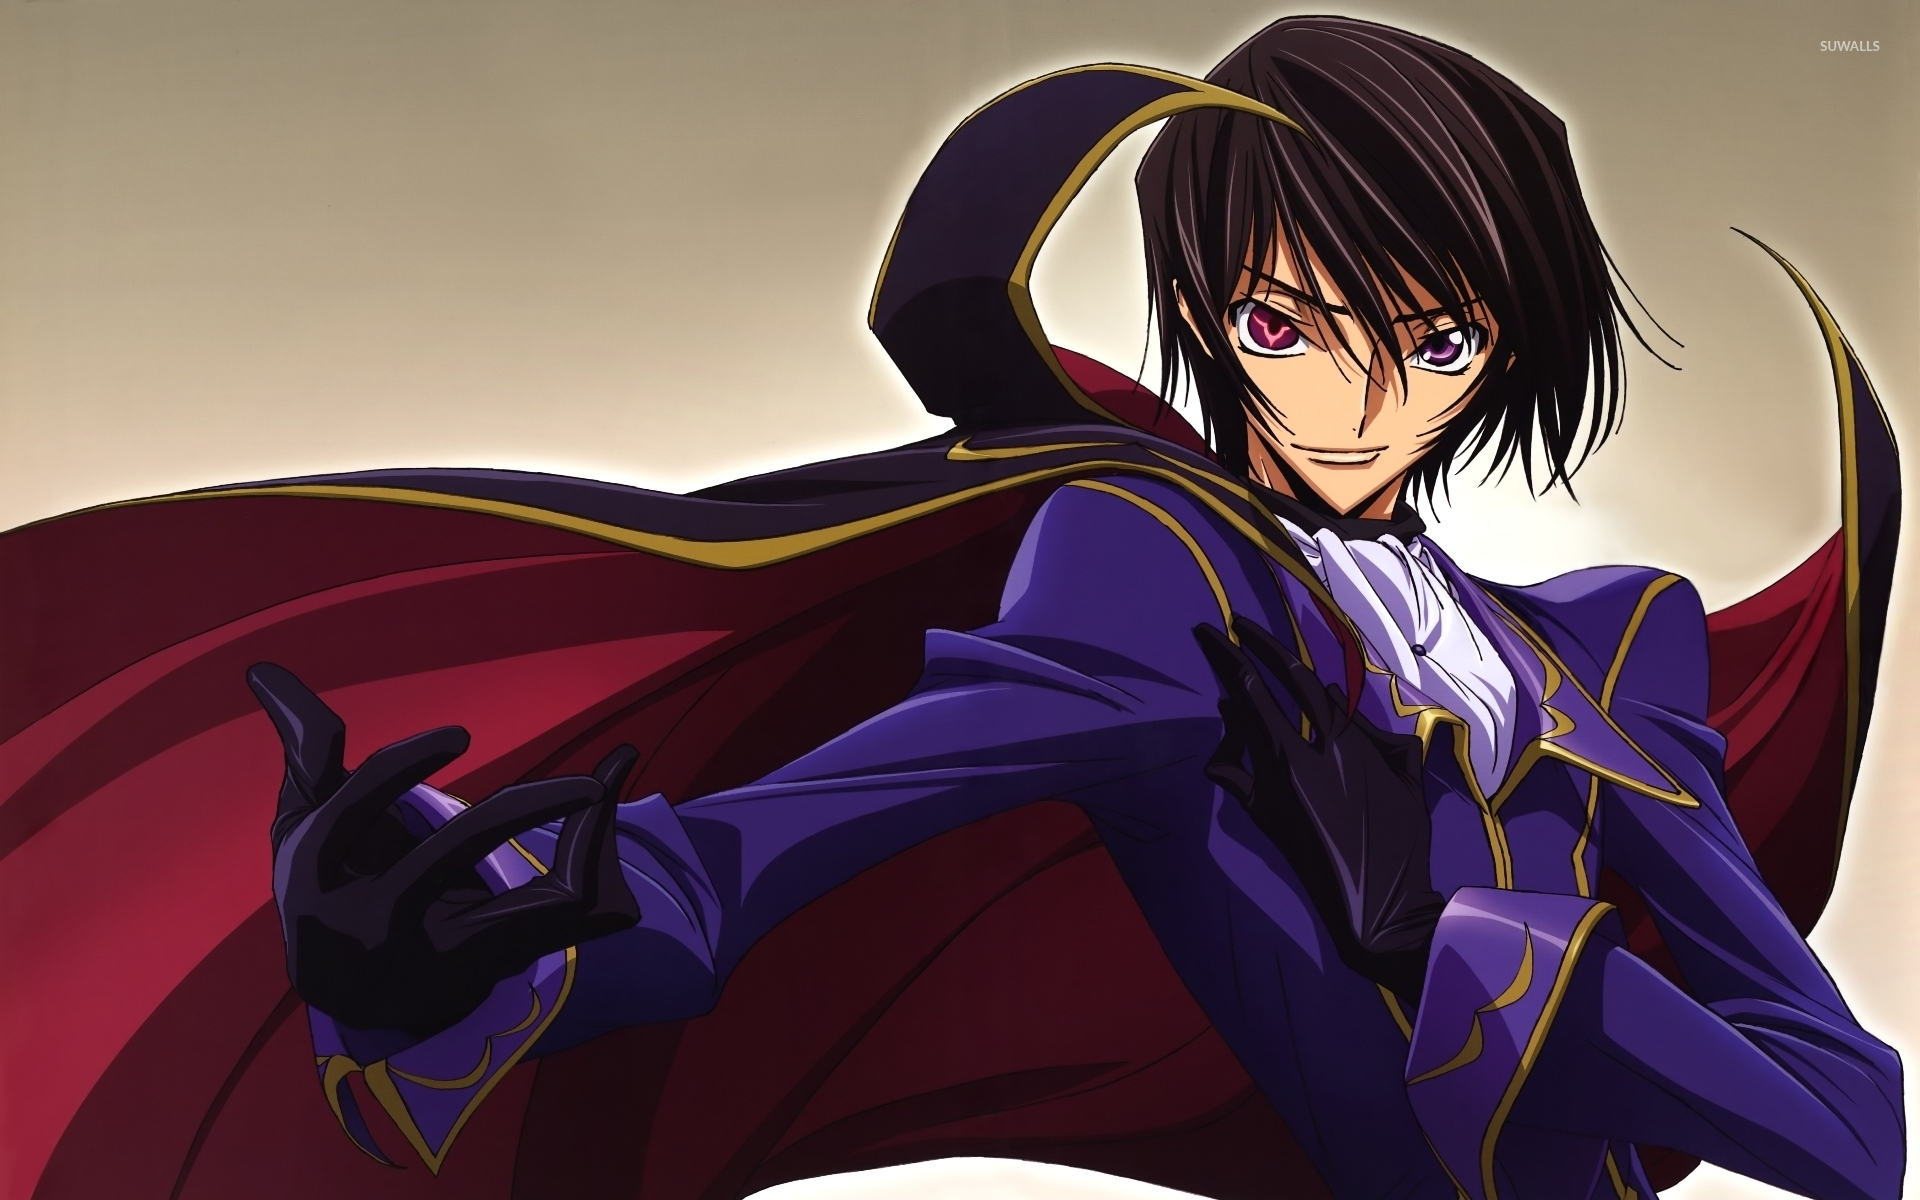 wallpaper lelouch - photo #26